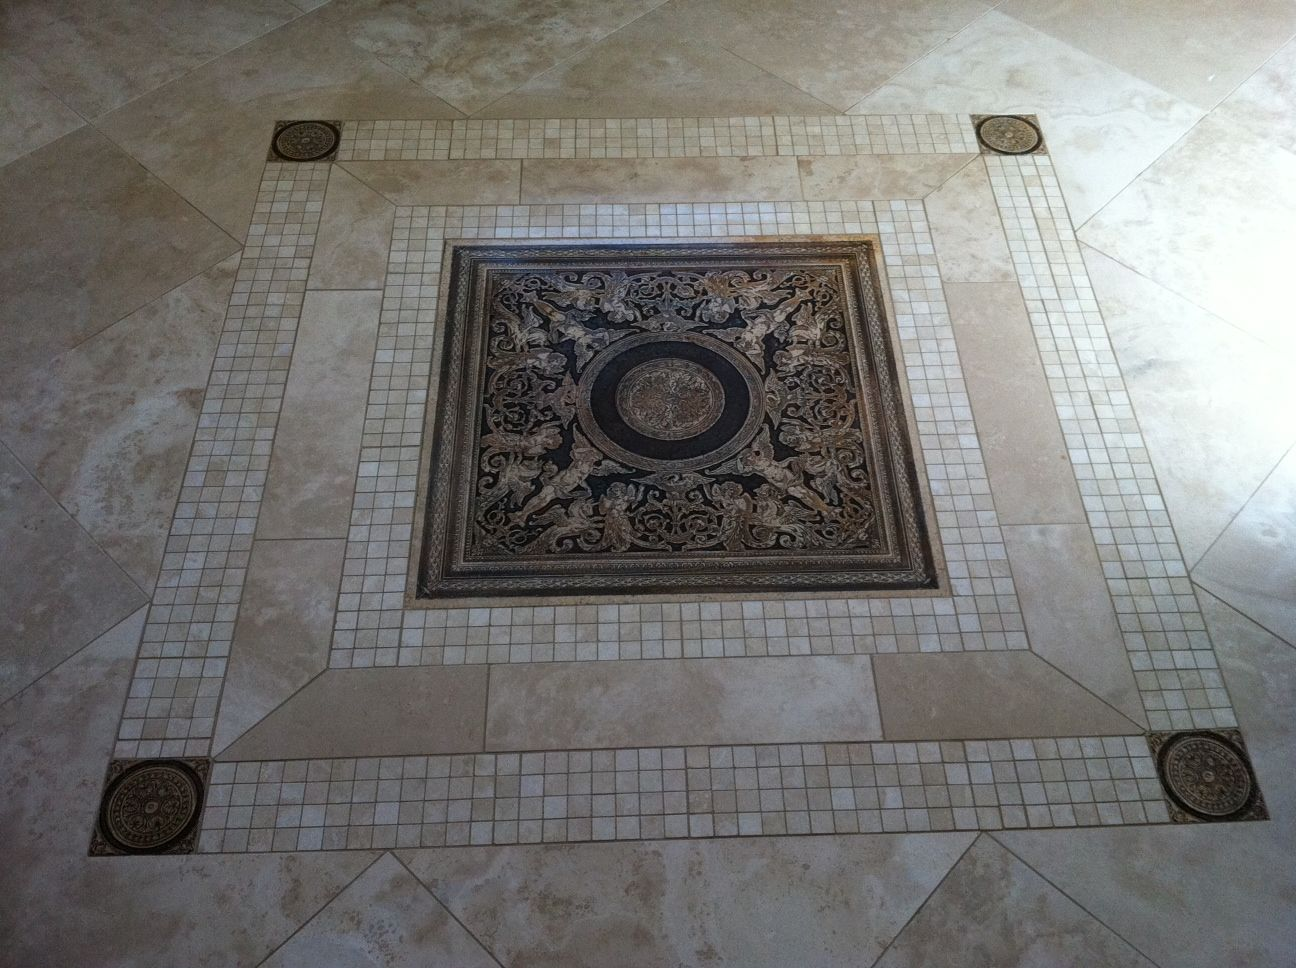 Unique tile floor designs published january 9 2013 at 1296 968 unique tile floor designs published january 9 2013 at 1296 968 in custom dailygadgetfo Image collections